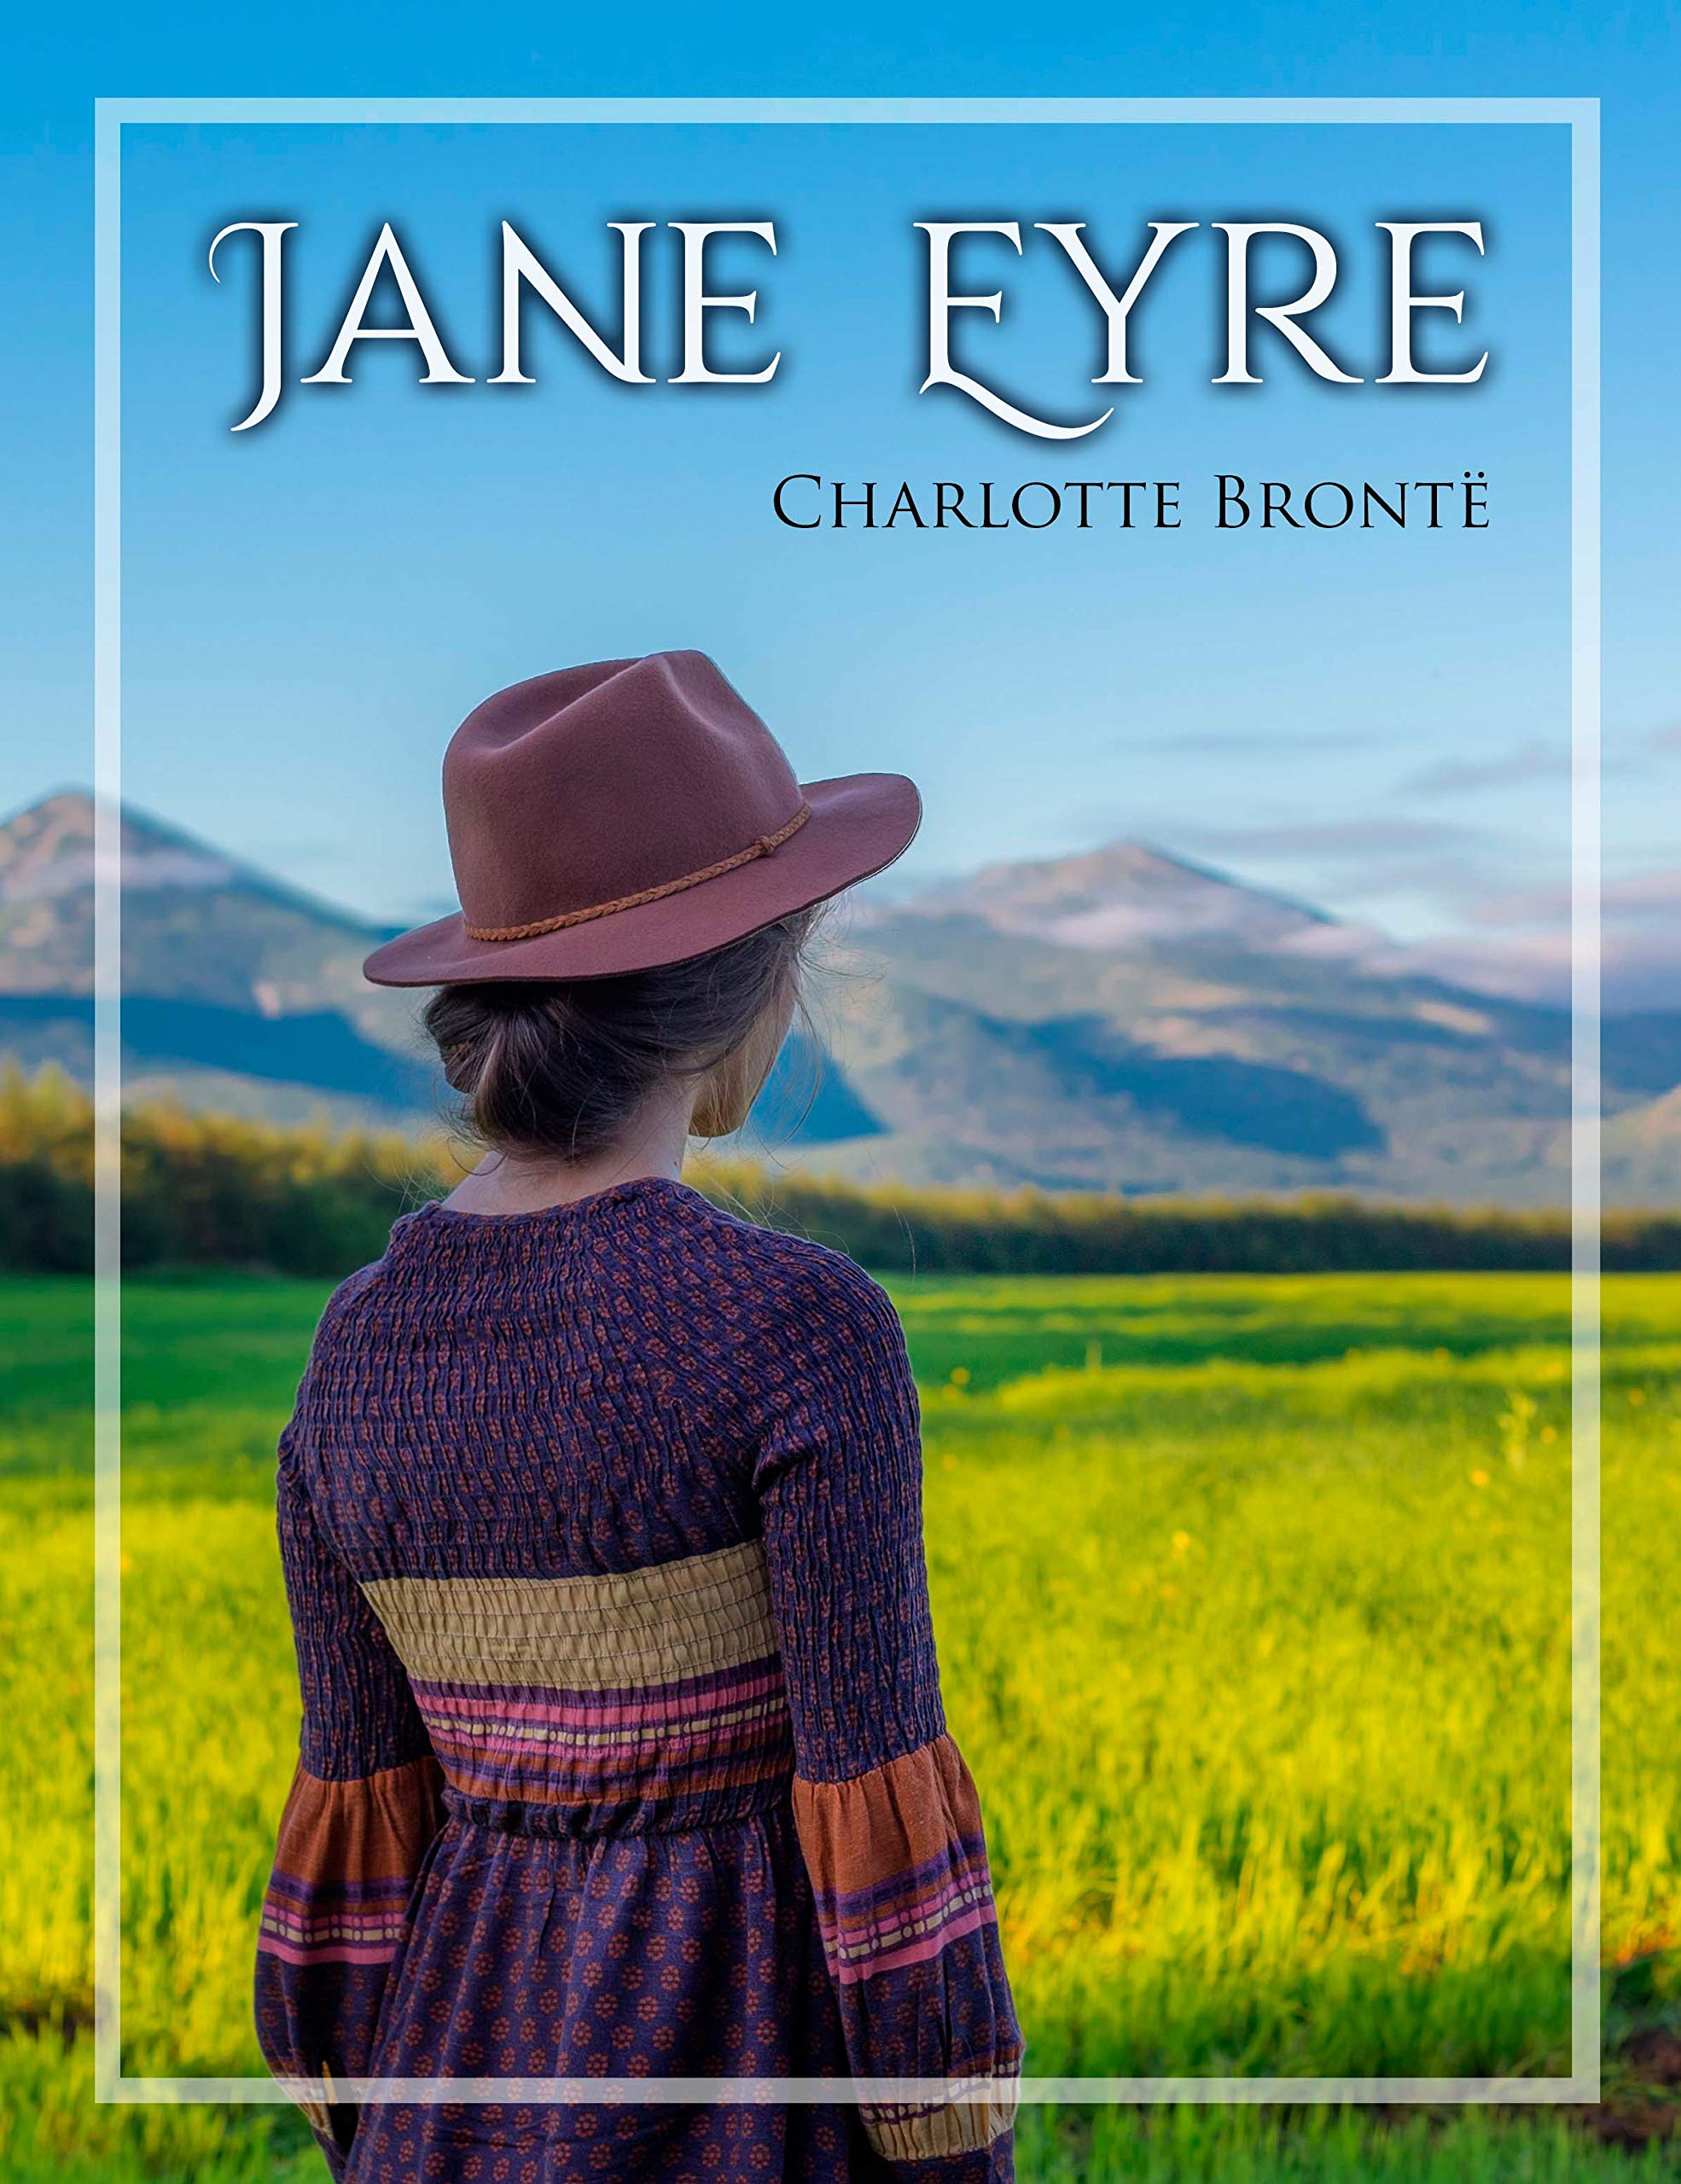 Jane Eyre : Includes biography of Charlotte Brontë (annotated)